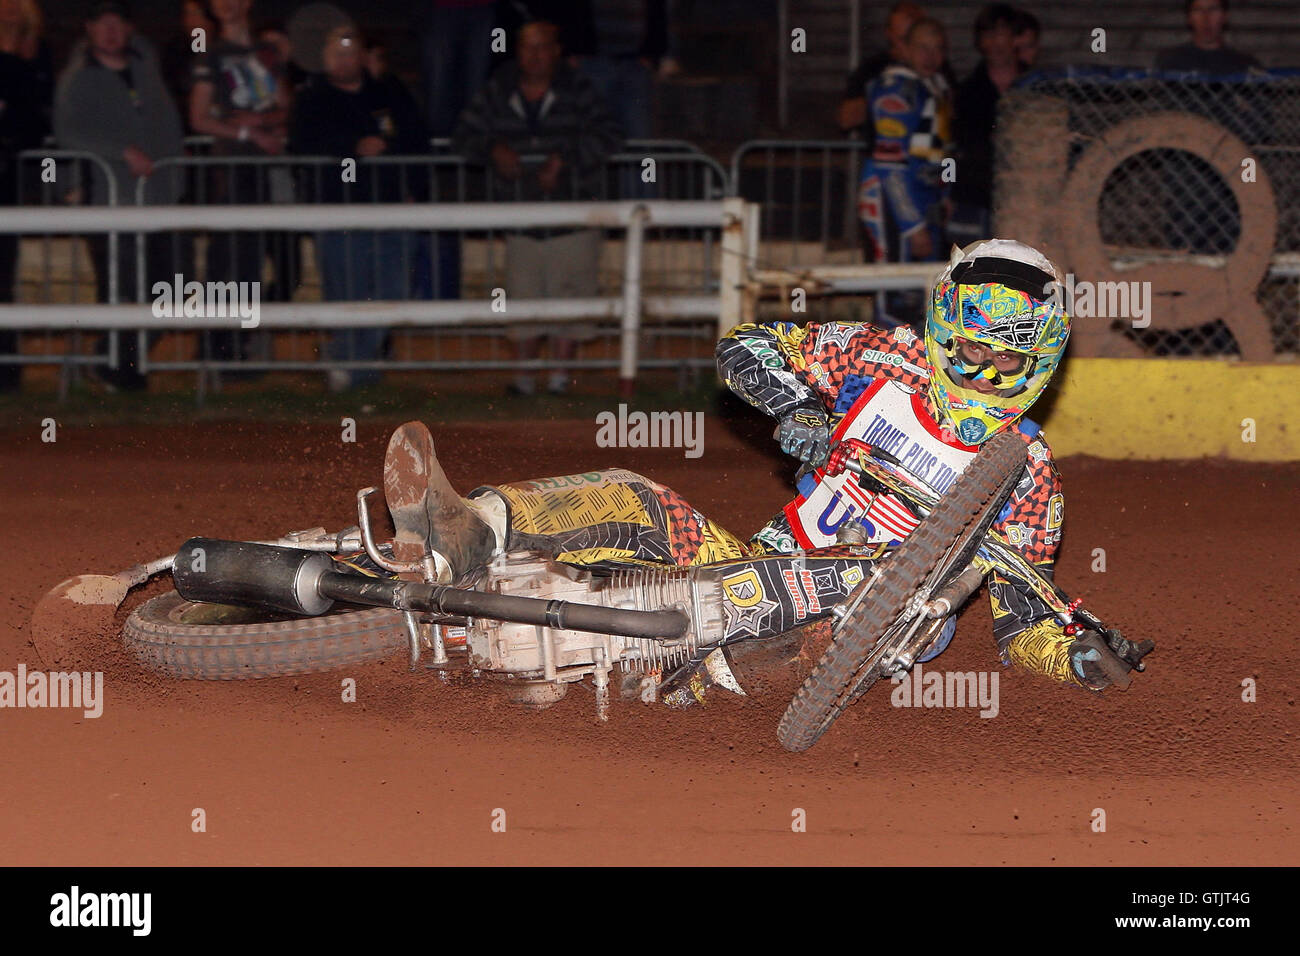 Heat 10: Doug Nicol crashes out - Hackney Hawks vs Team America - Speedway Challenge Meeting at Rye House - 09/04/11 - Stock Image